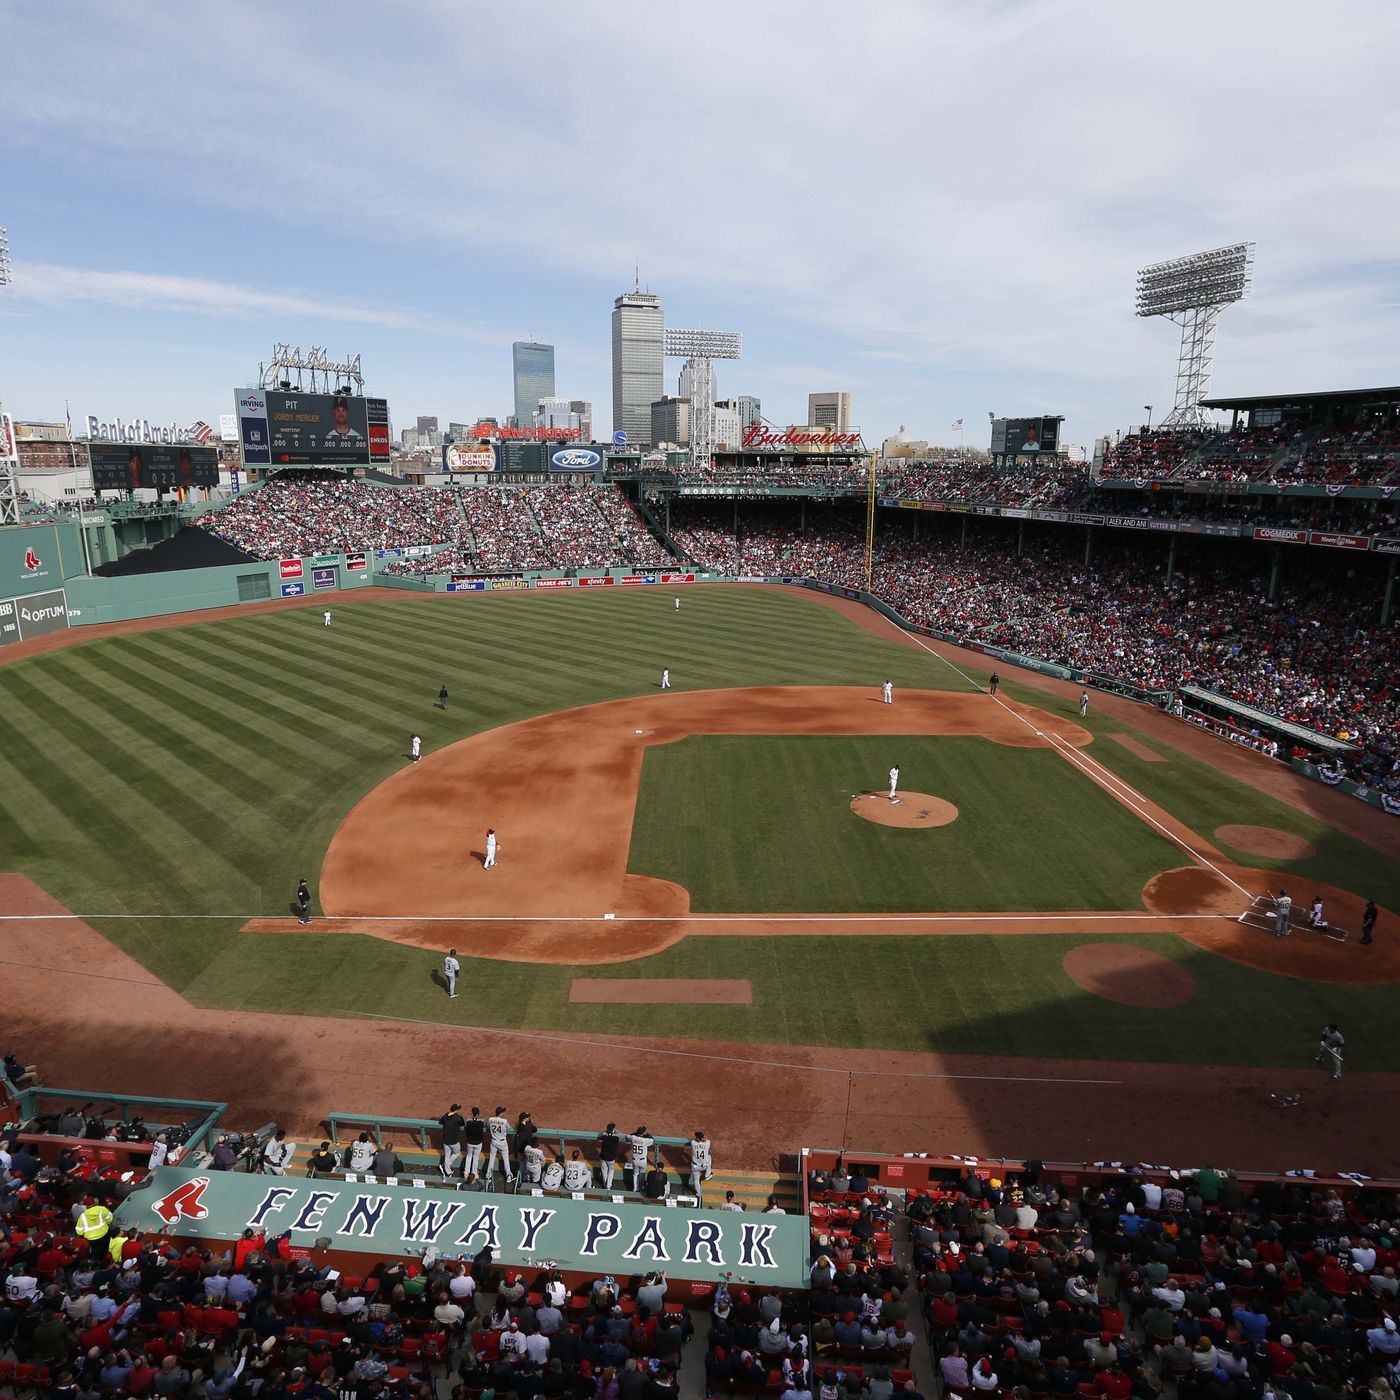 df6d66631 Fenway Park ranked 13th by TripAdvisor among all US landmarks - Over ...